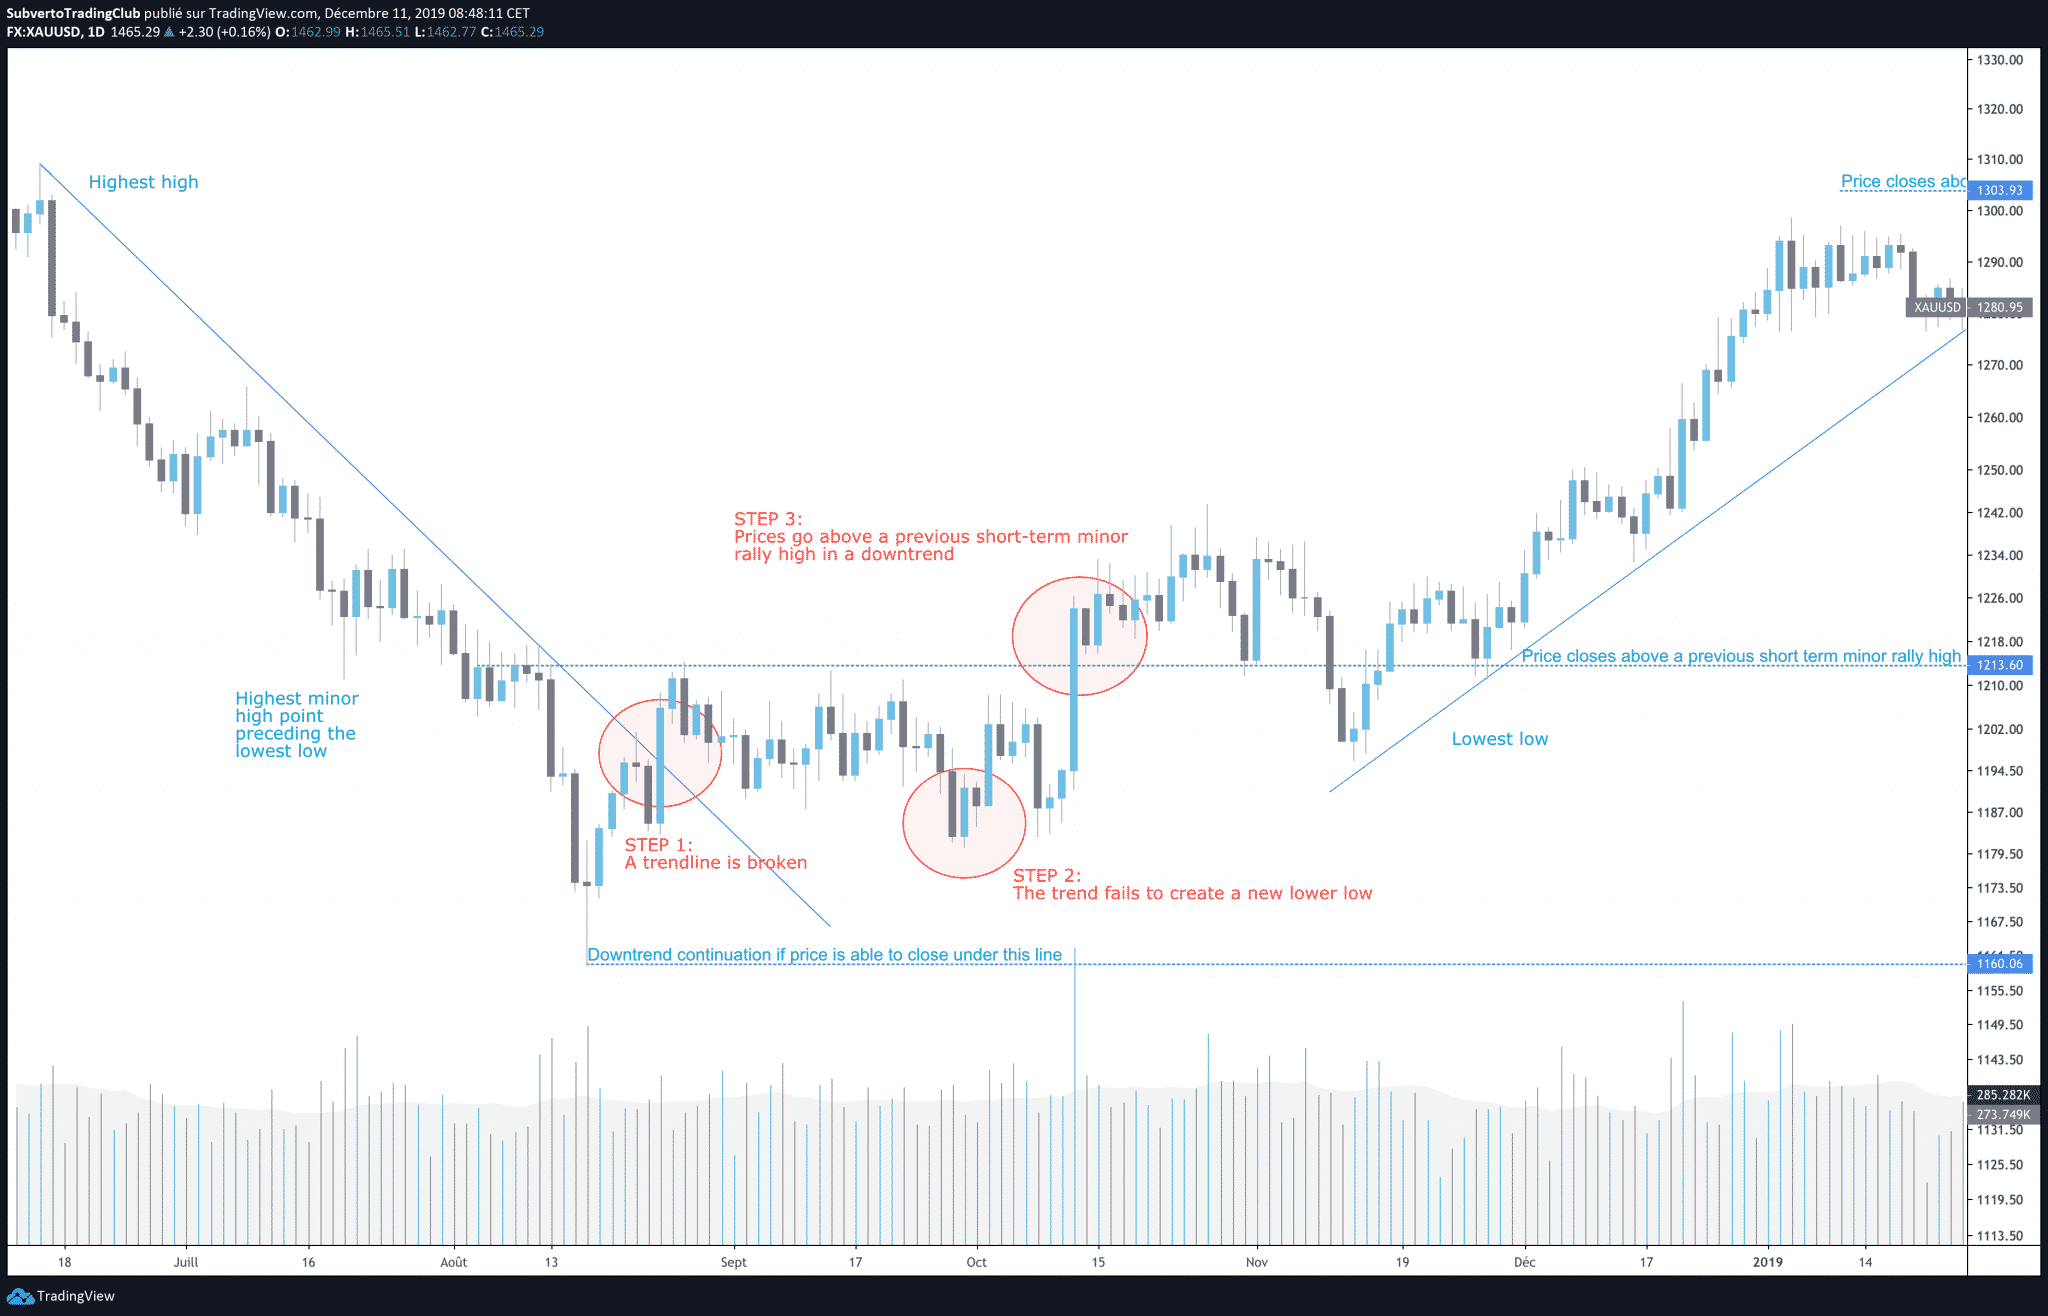 Vic-SPERANDEO-downtrend-trend-reversal-step-by-step-1-2-3-scaled.png